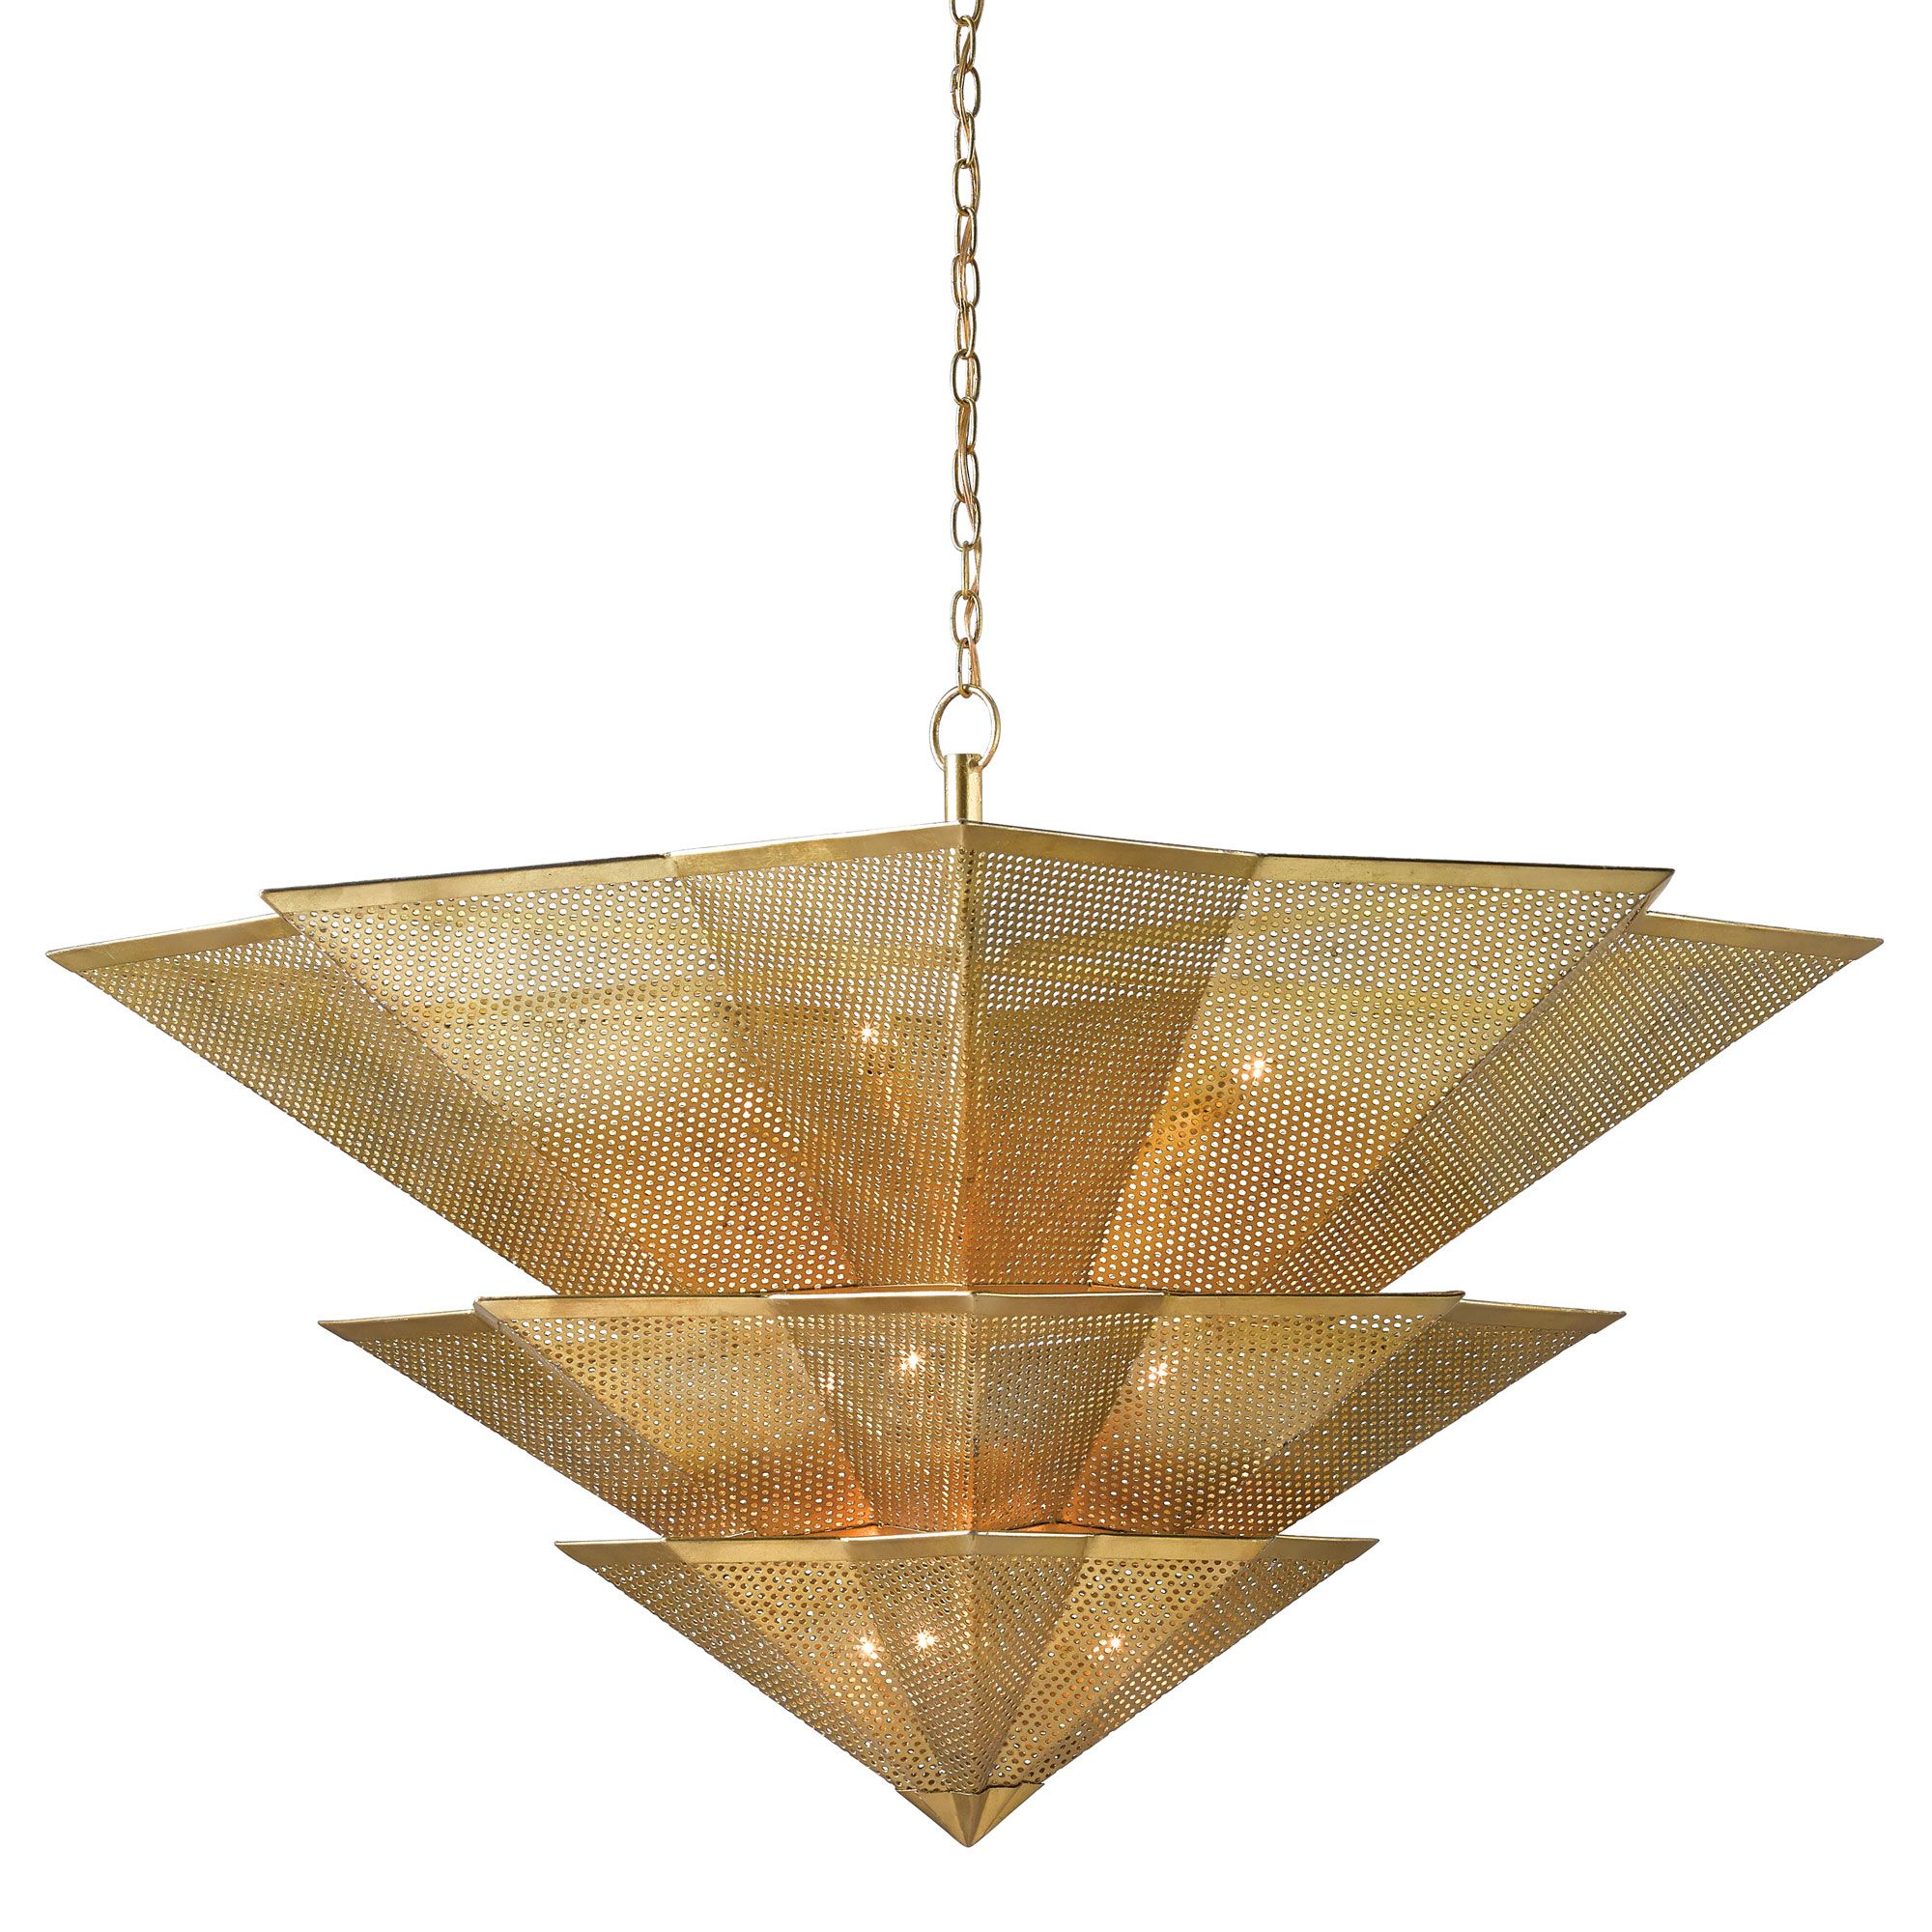 Hanway Chandelier By Currey And Company 9000 0359 Cc Chandelier Ceiling Lights Geometric Chandelier Ceiling Lights